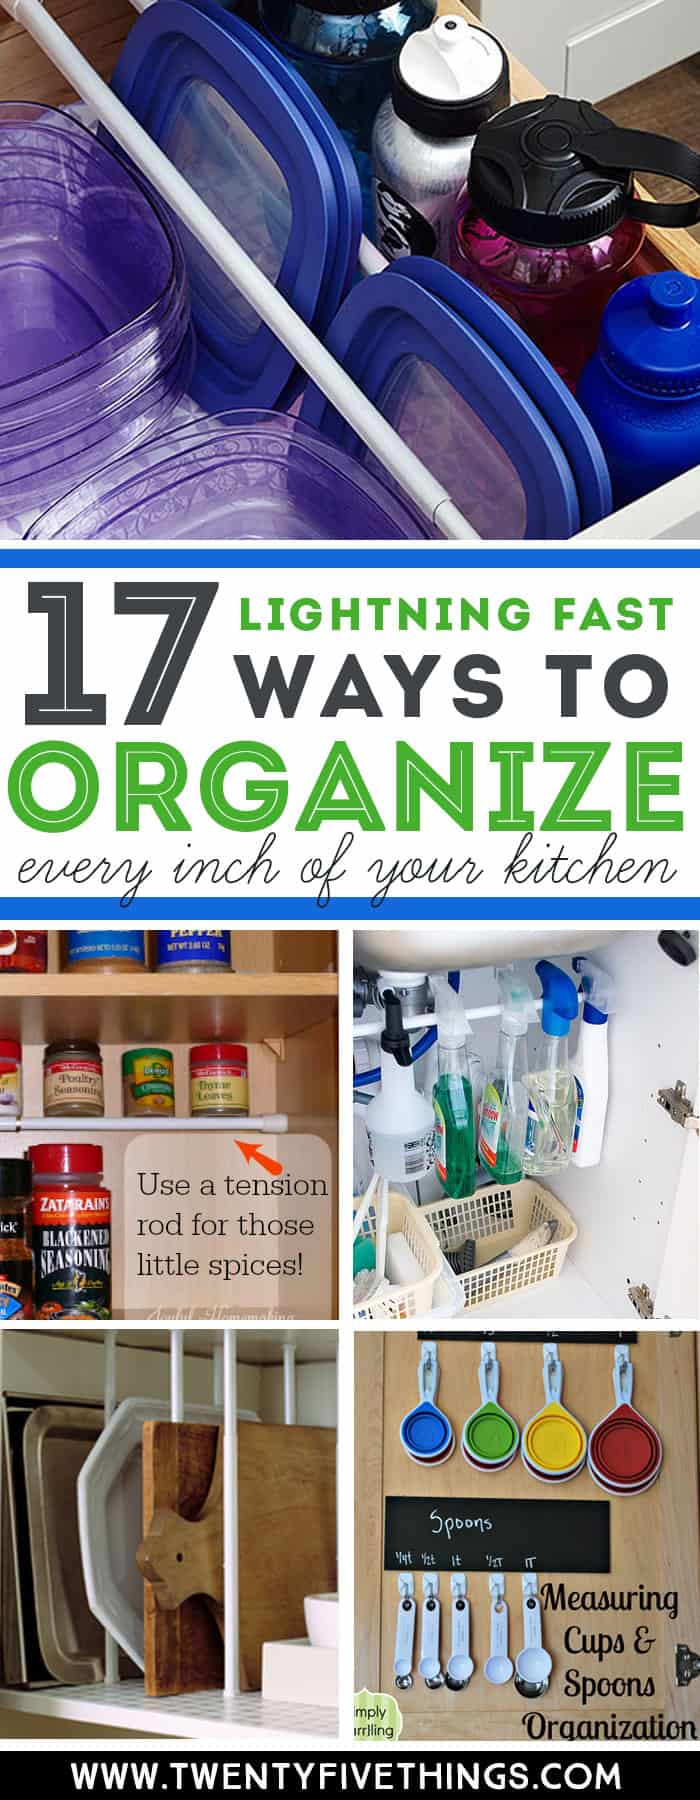 You can organize every inch of your kitchen super-fast with these genius tips. Check out how to use tension rods, command hooks, and file folders for easy ways to organize your kitchen.. #OrganizationIdeas #kitchen